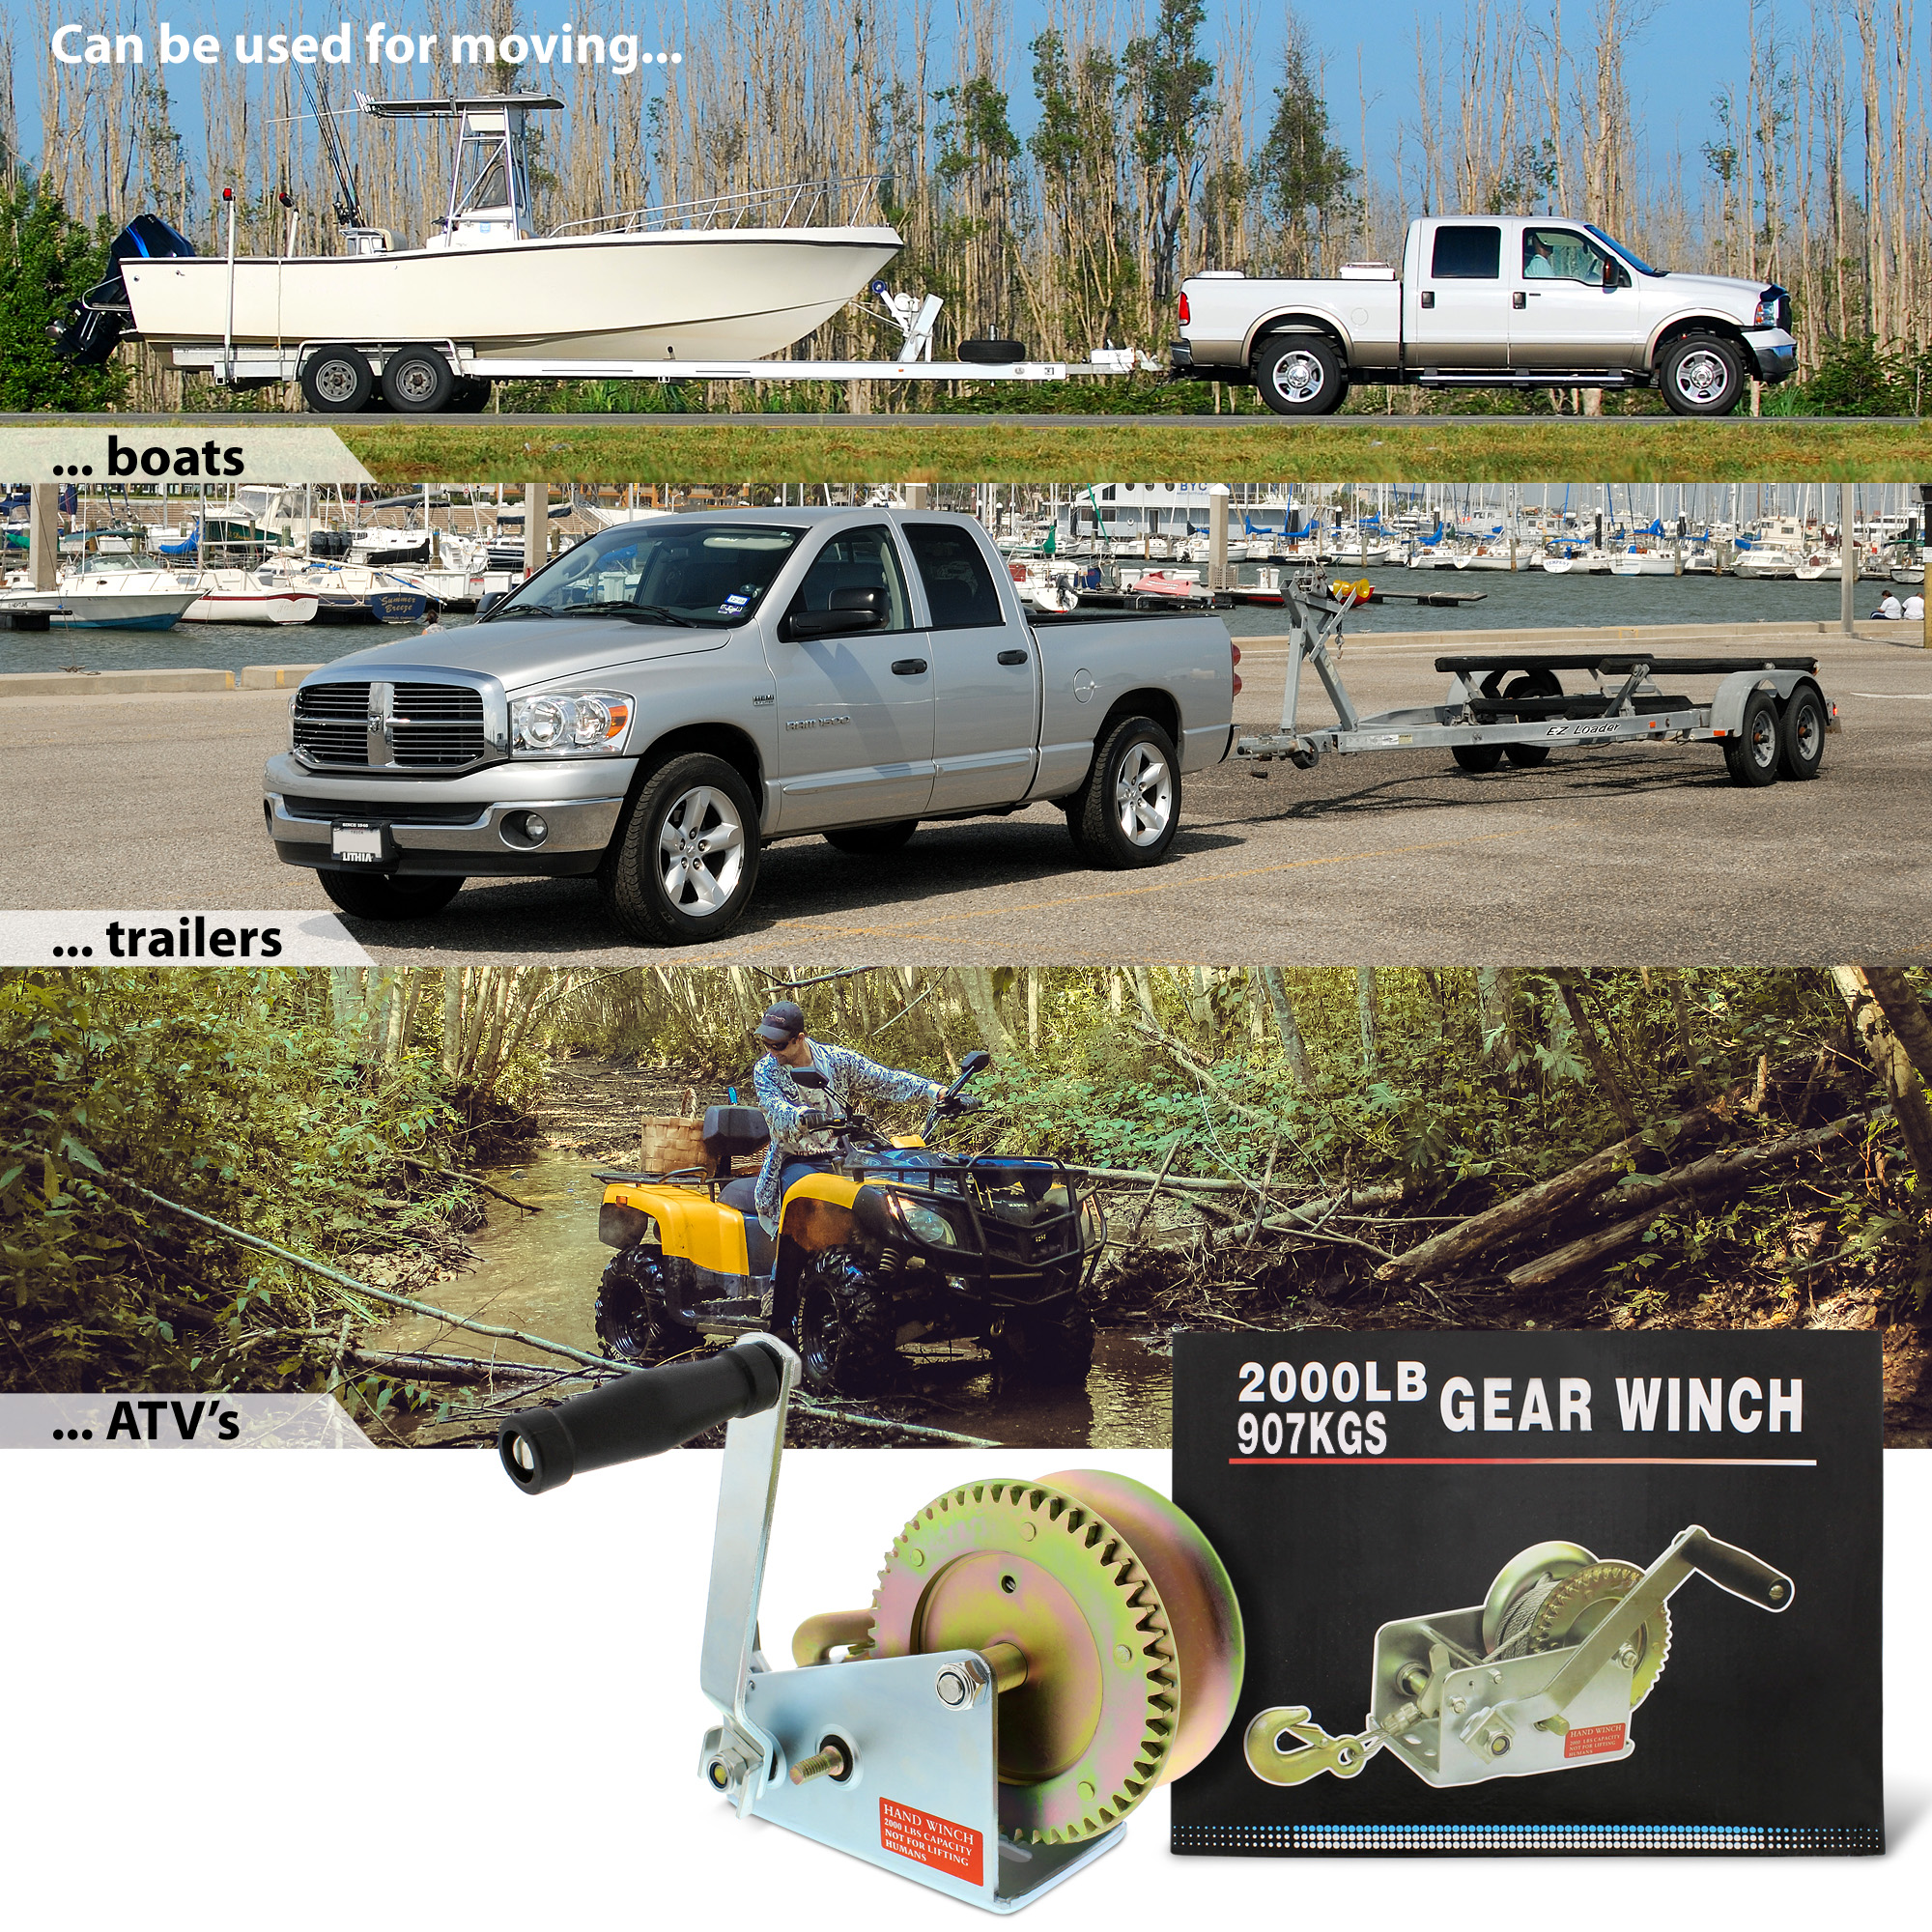 Single-Speed up to 600 lb for Trailer ABN Hand Crank Gear Winch Boat or ATV